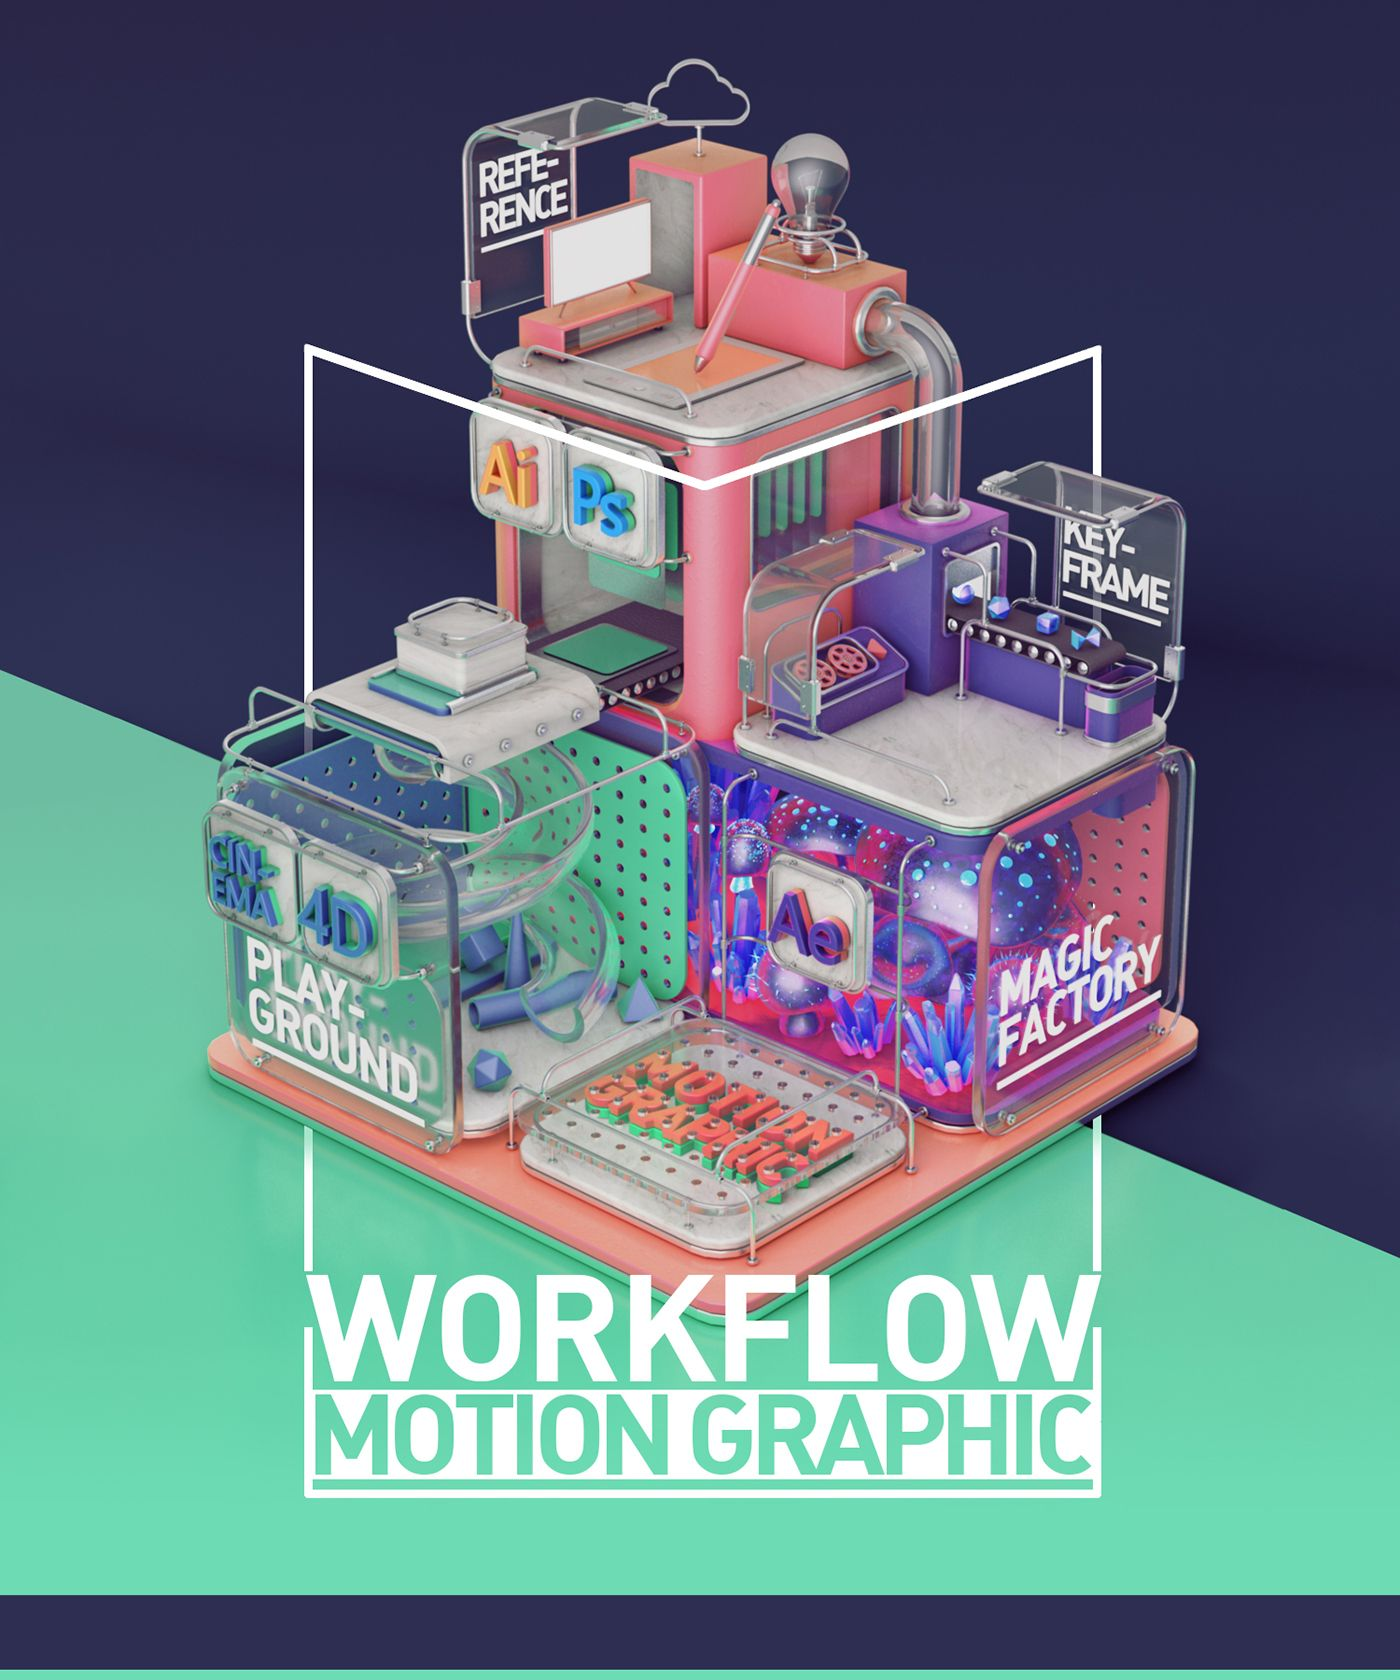 The Art of Motion Graphic Workflow on Behance #motiongraphic